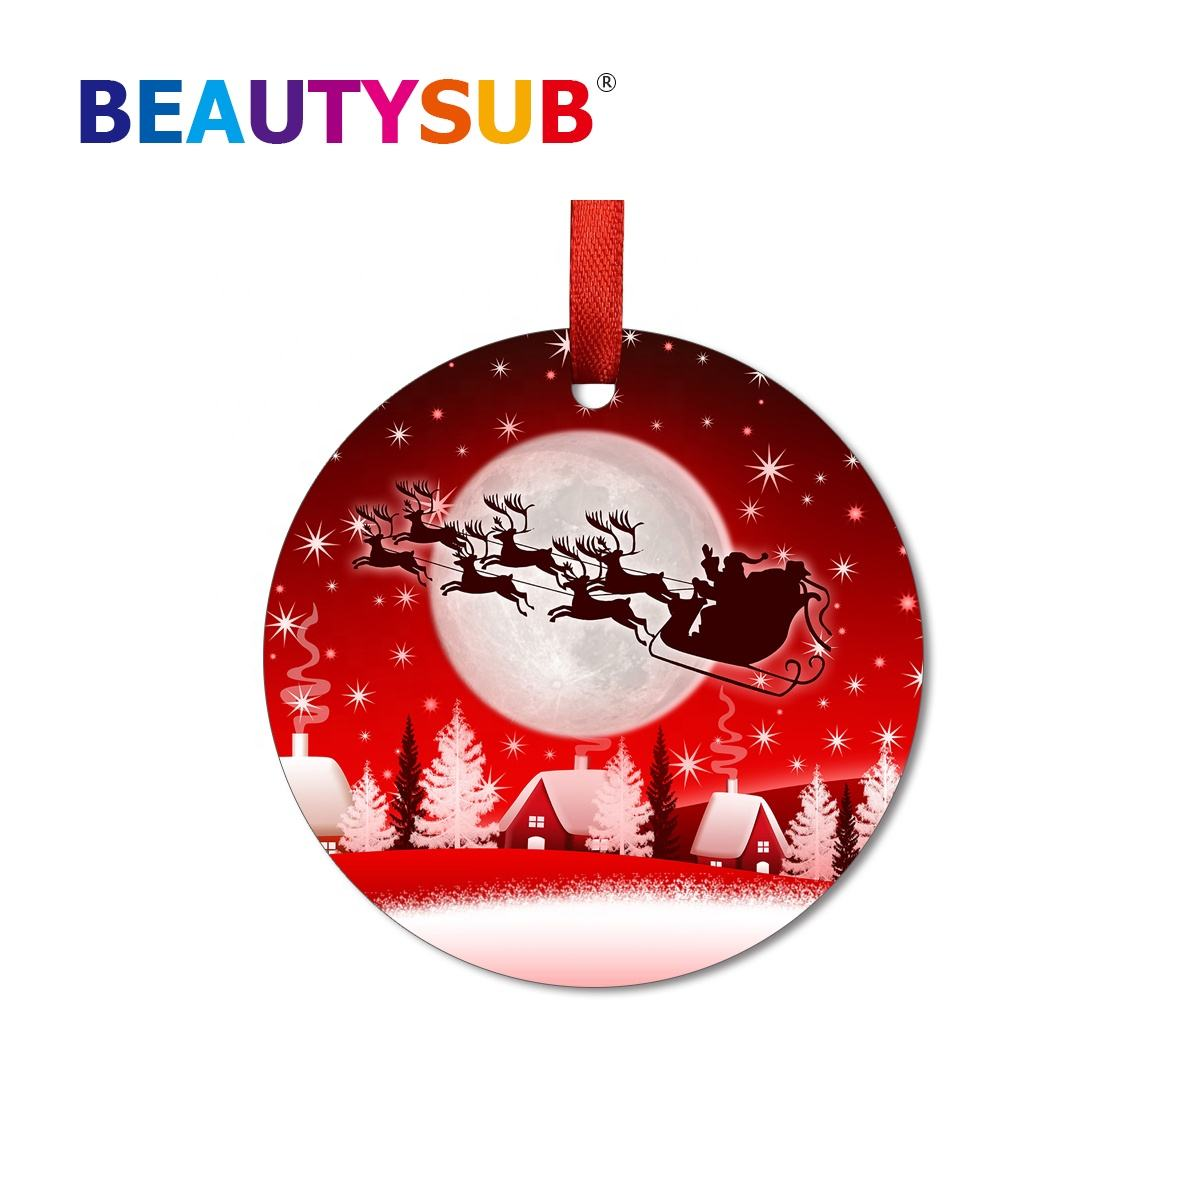 HD Gloss White Coated Dye Sublimation Aluminum Christmas Ornaments Printable Blanks For Heat Transfer Printing Metal Gifts